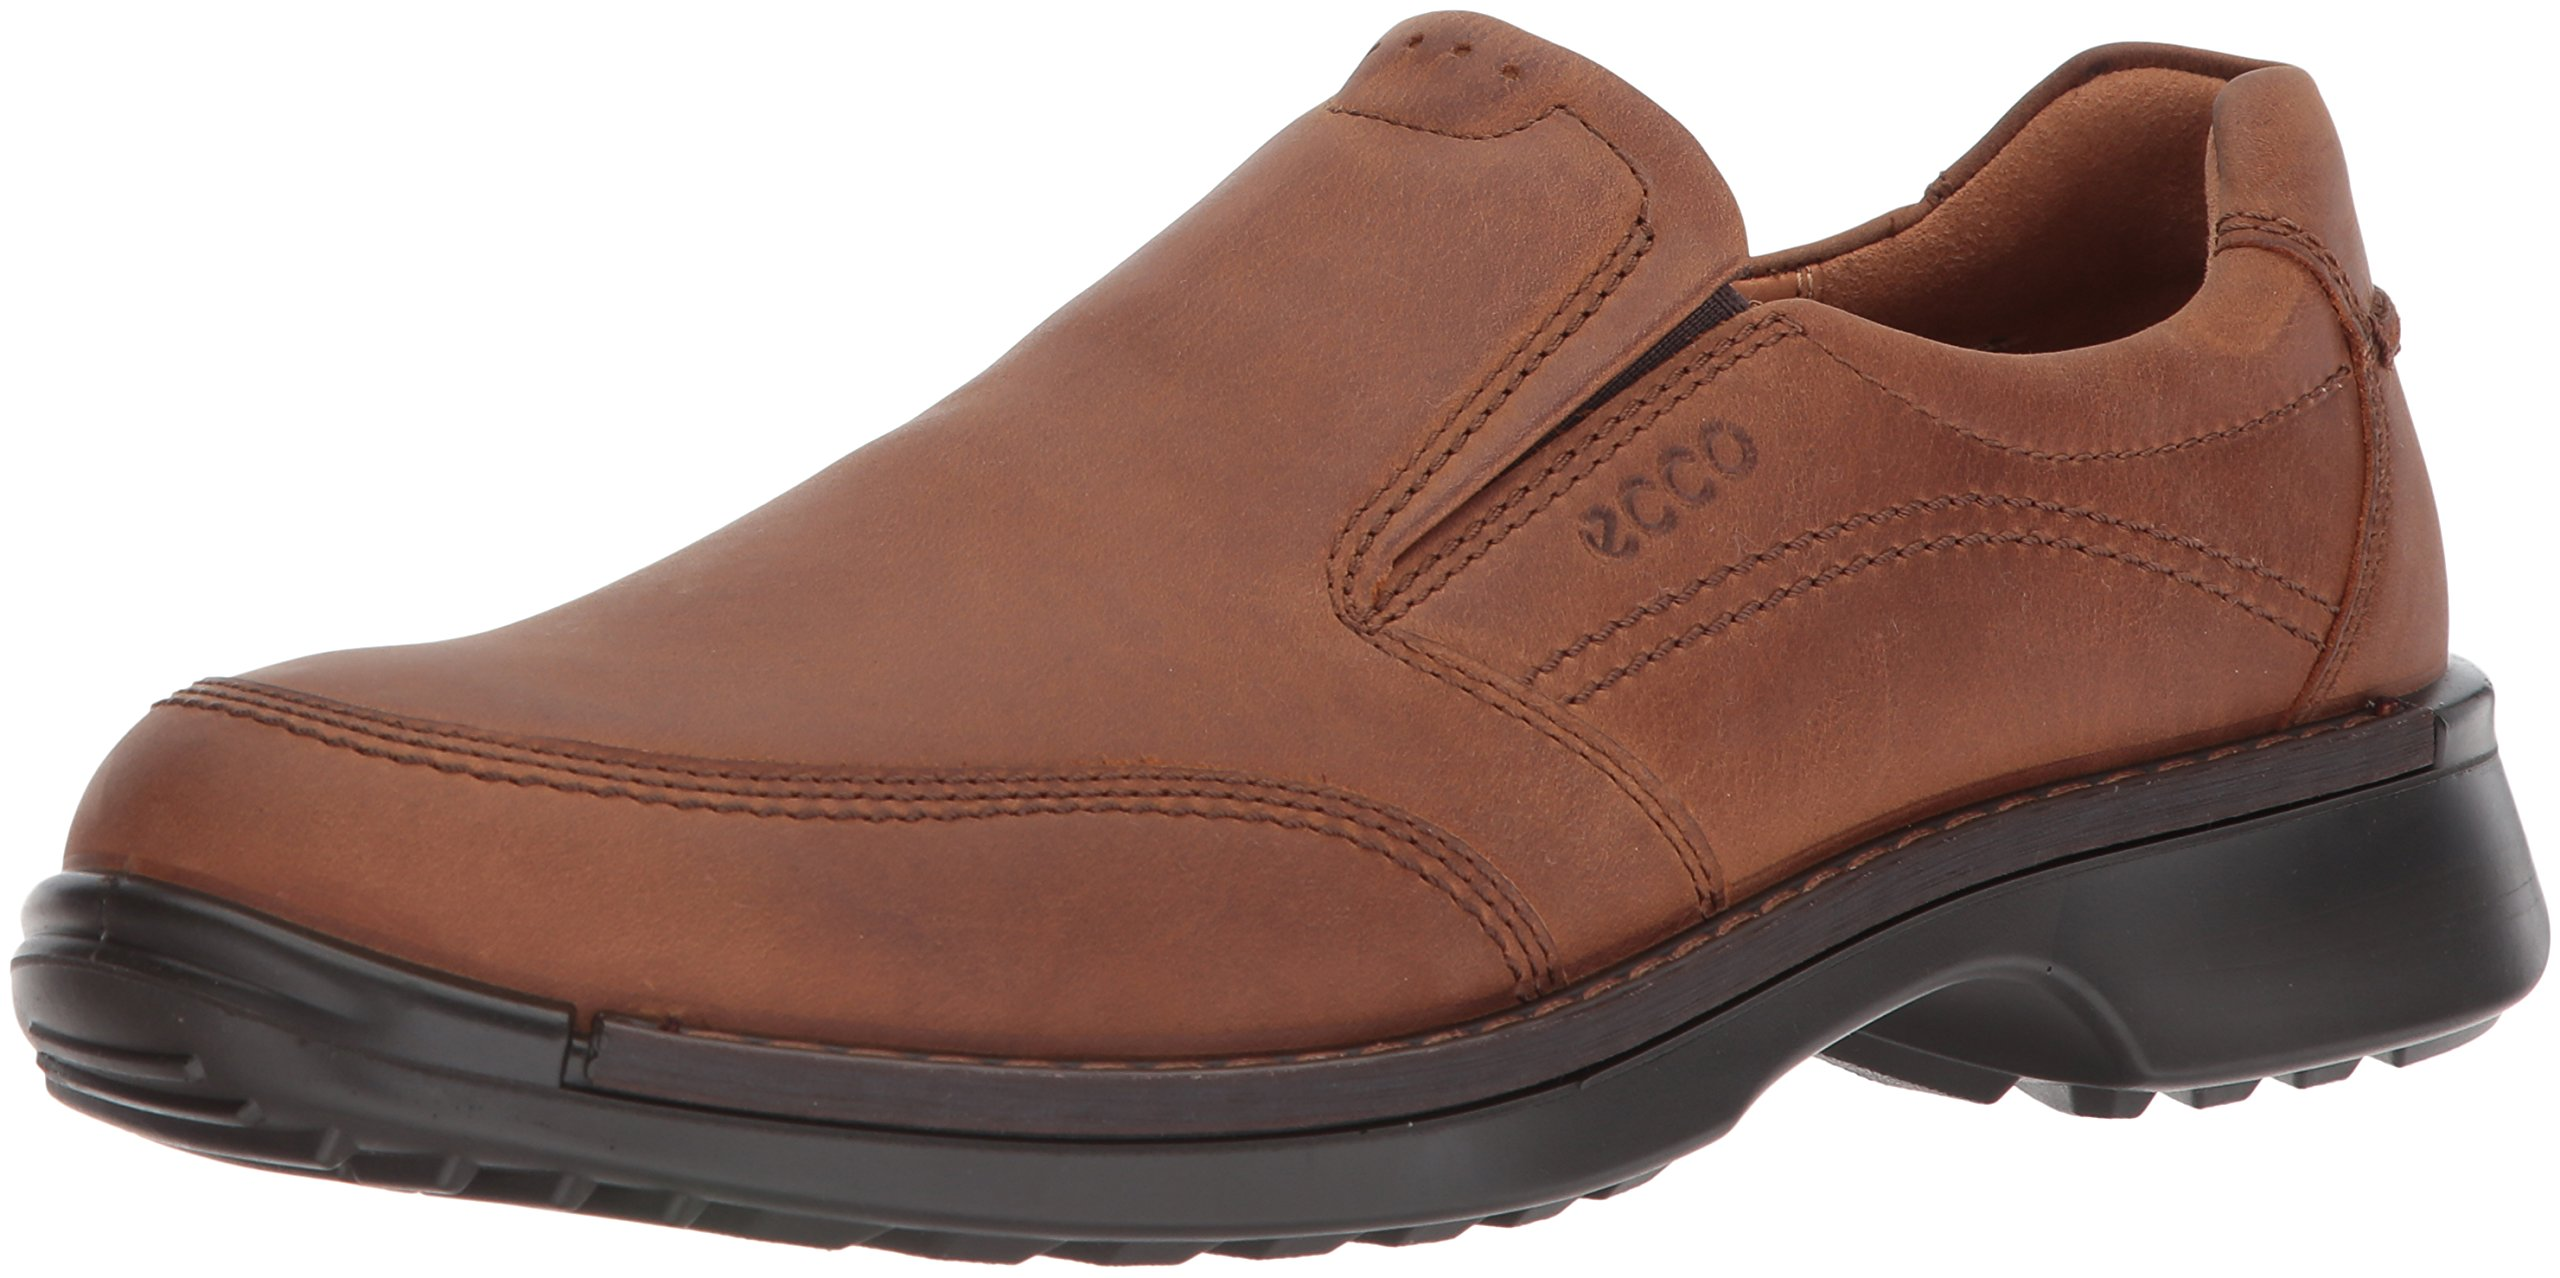 ECCO Men's Fusion II Slip-On Loafer, Amber, 43 EU/9-9.5 M US